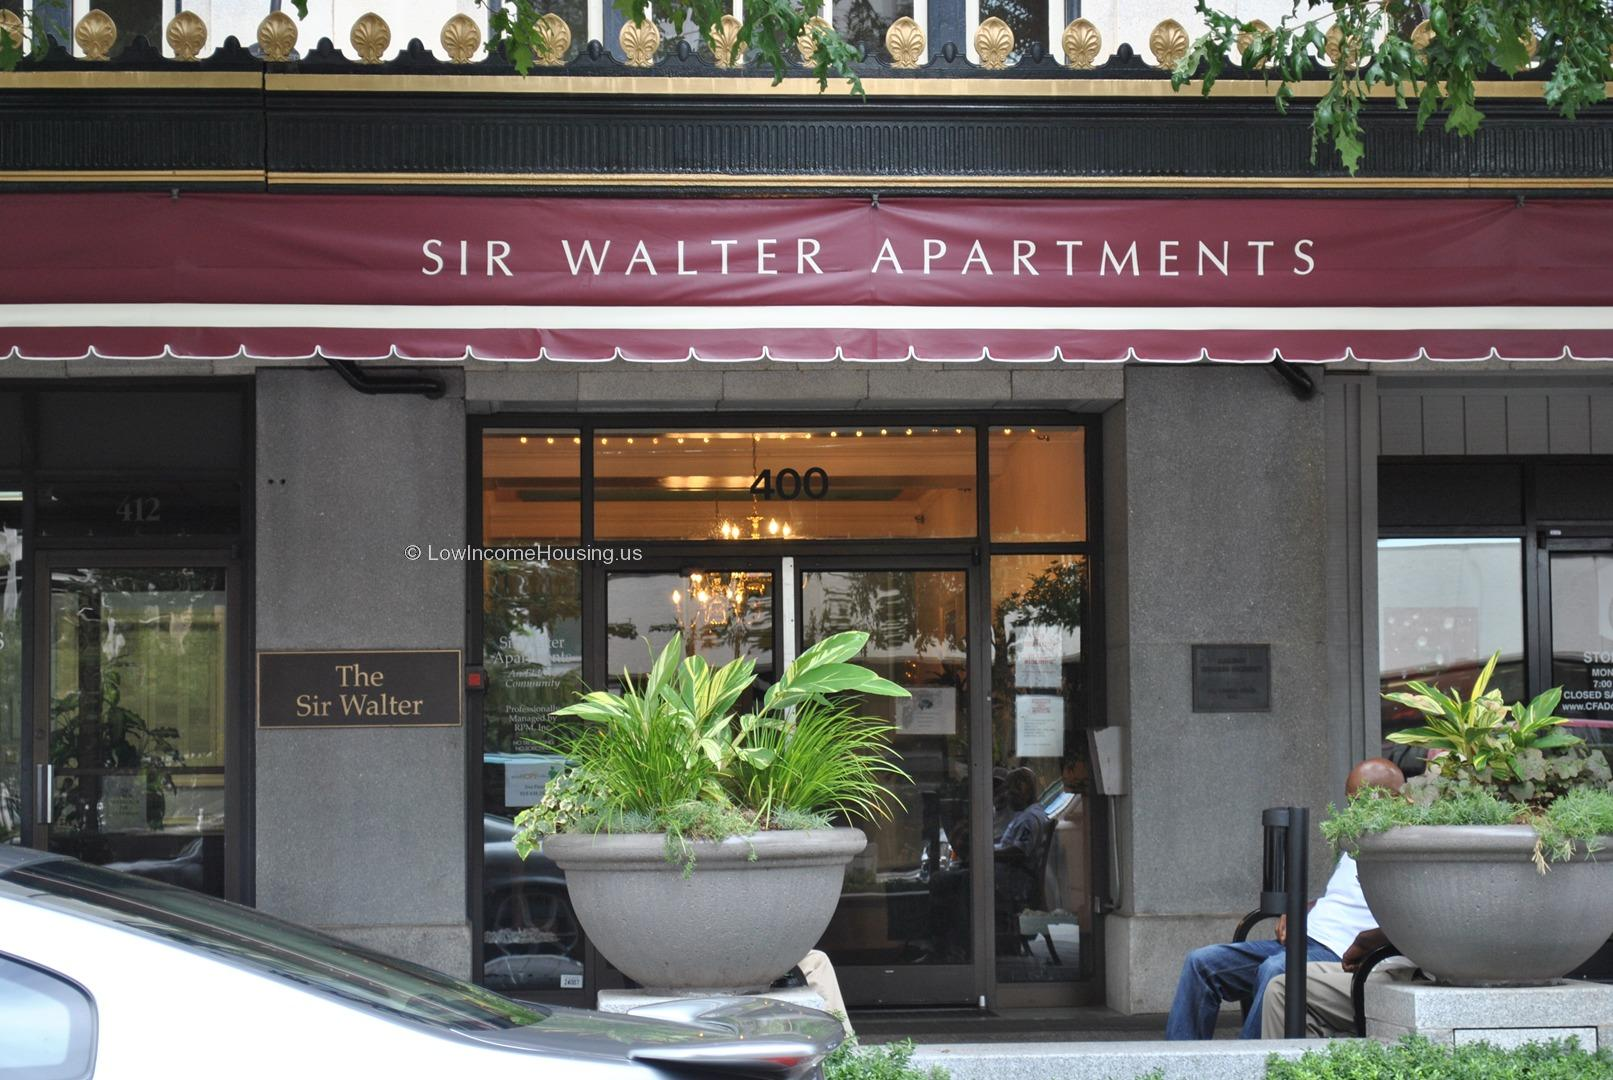 Sir Walter Apartments